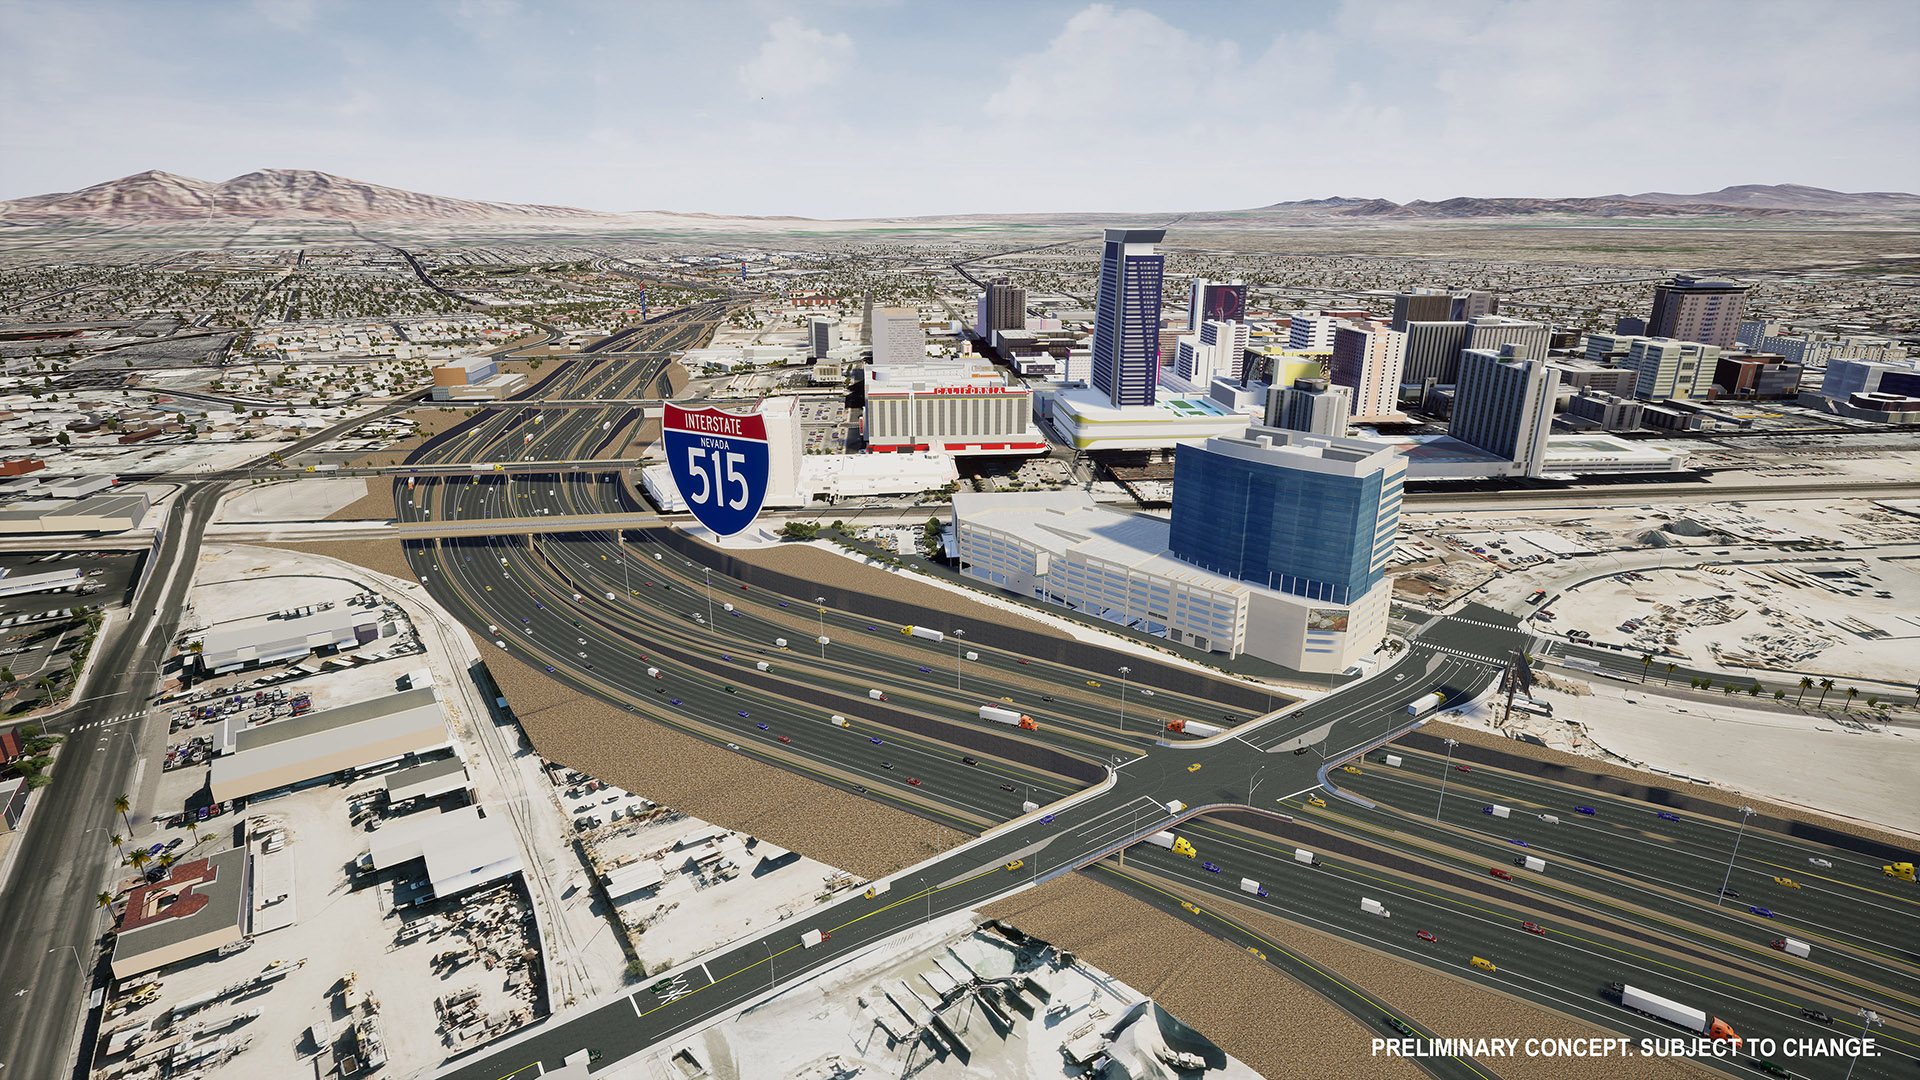 Rendering of potential I-515 improvements